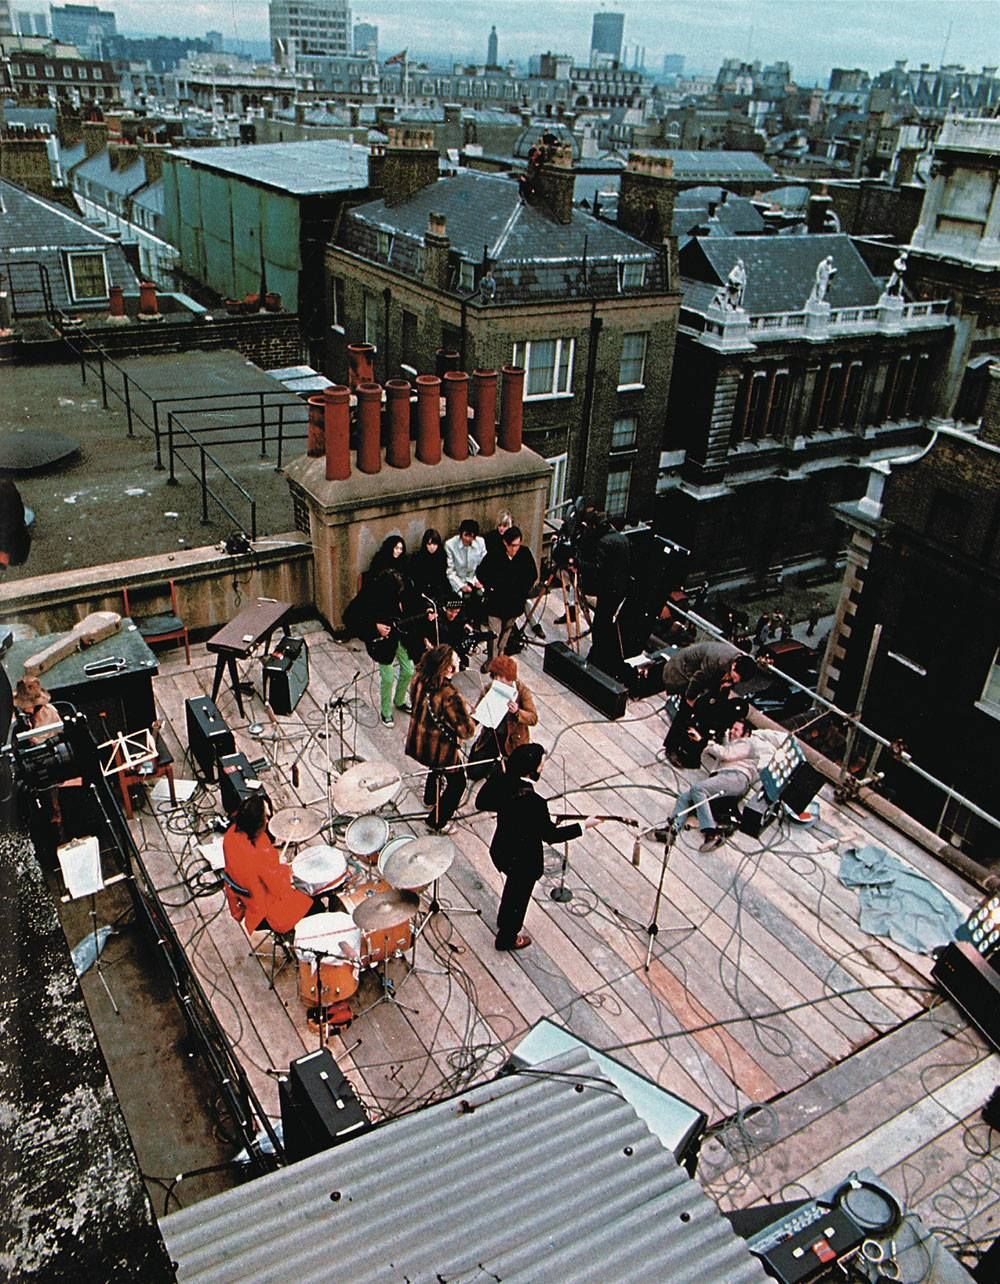 Beatles Rooftop Concert | The beatles, Across the universe ...